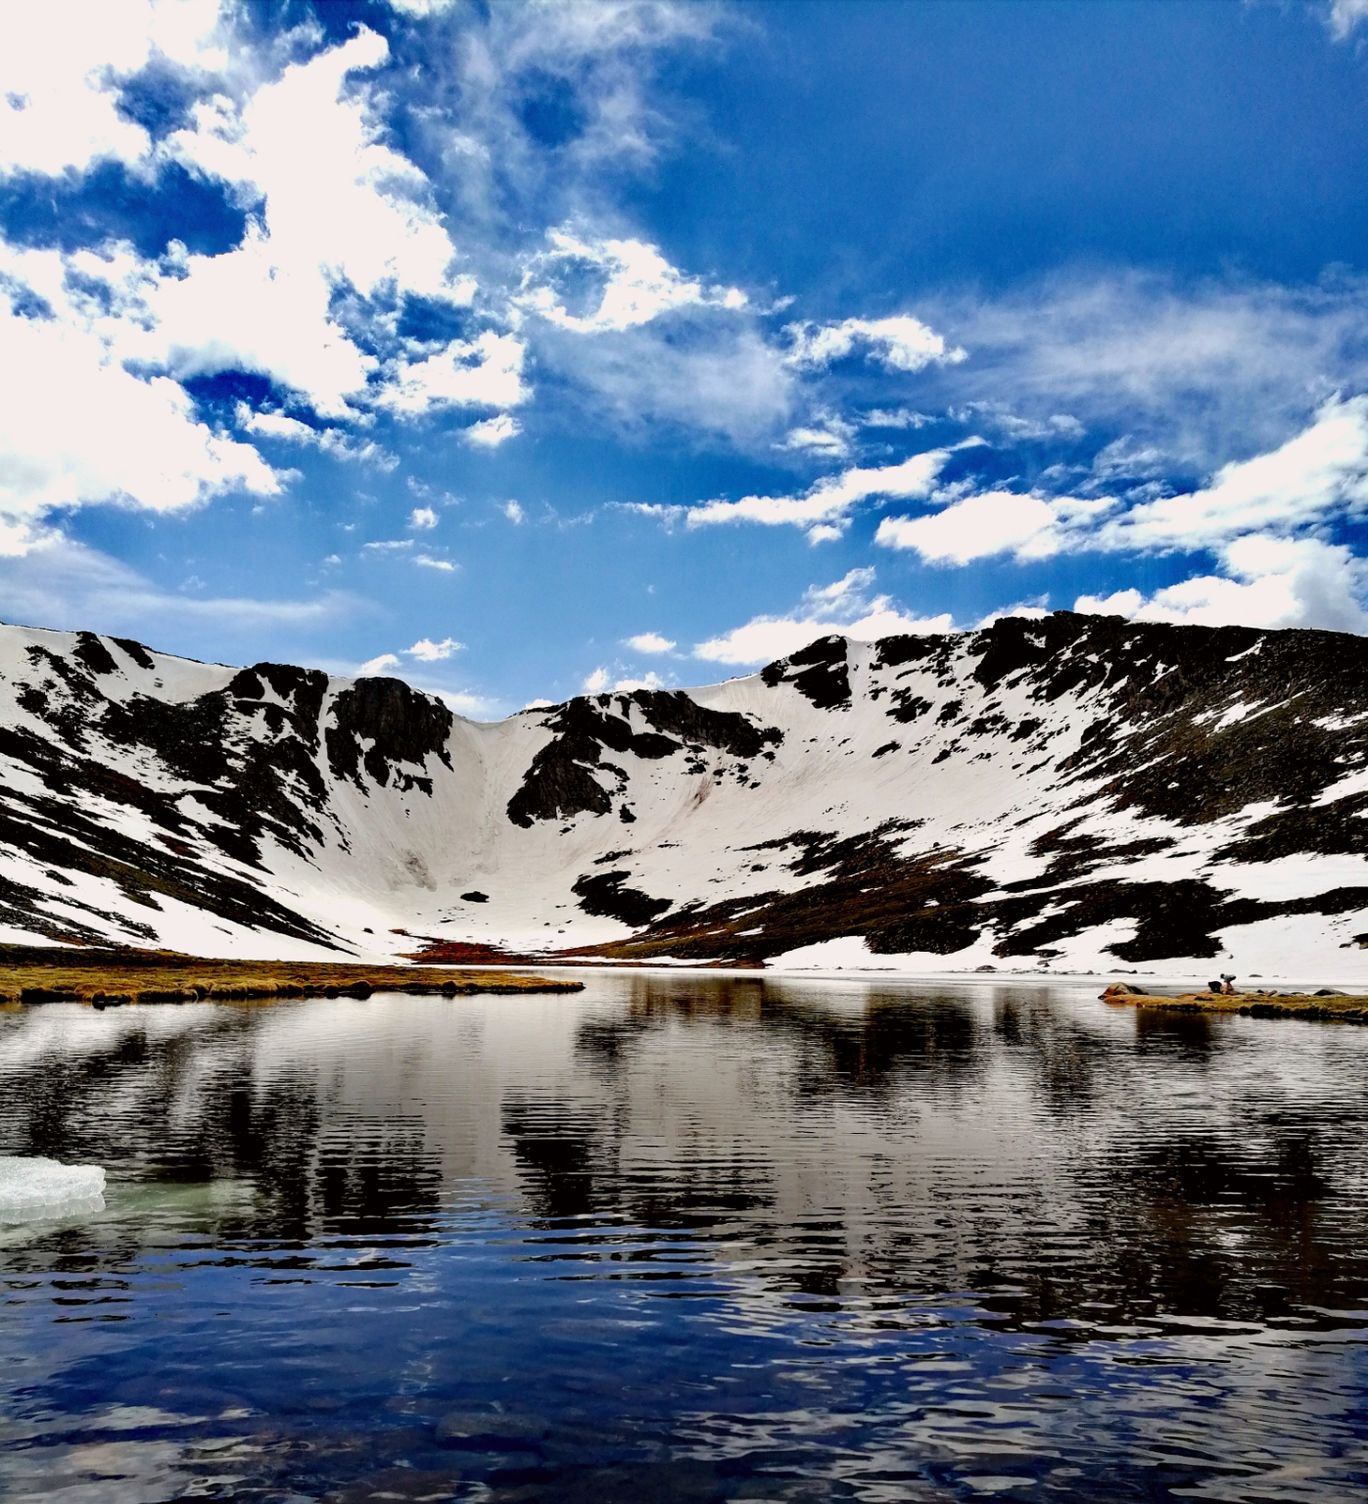 Photo of Mount Evans By Bikramjit Sethi